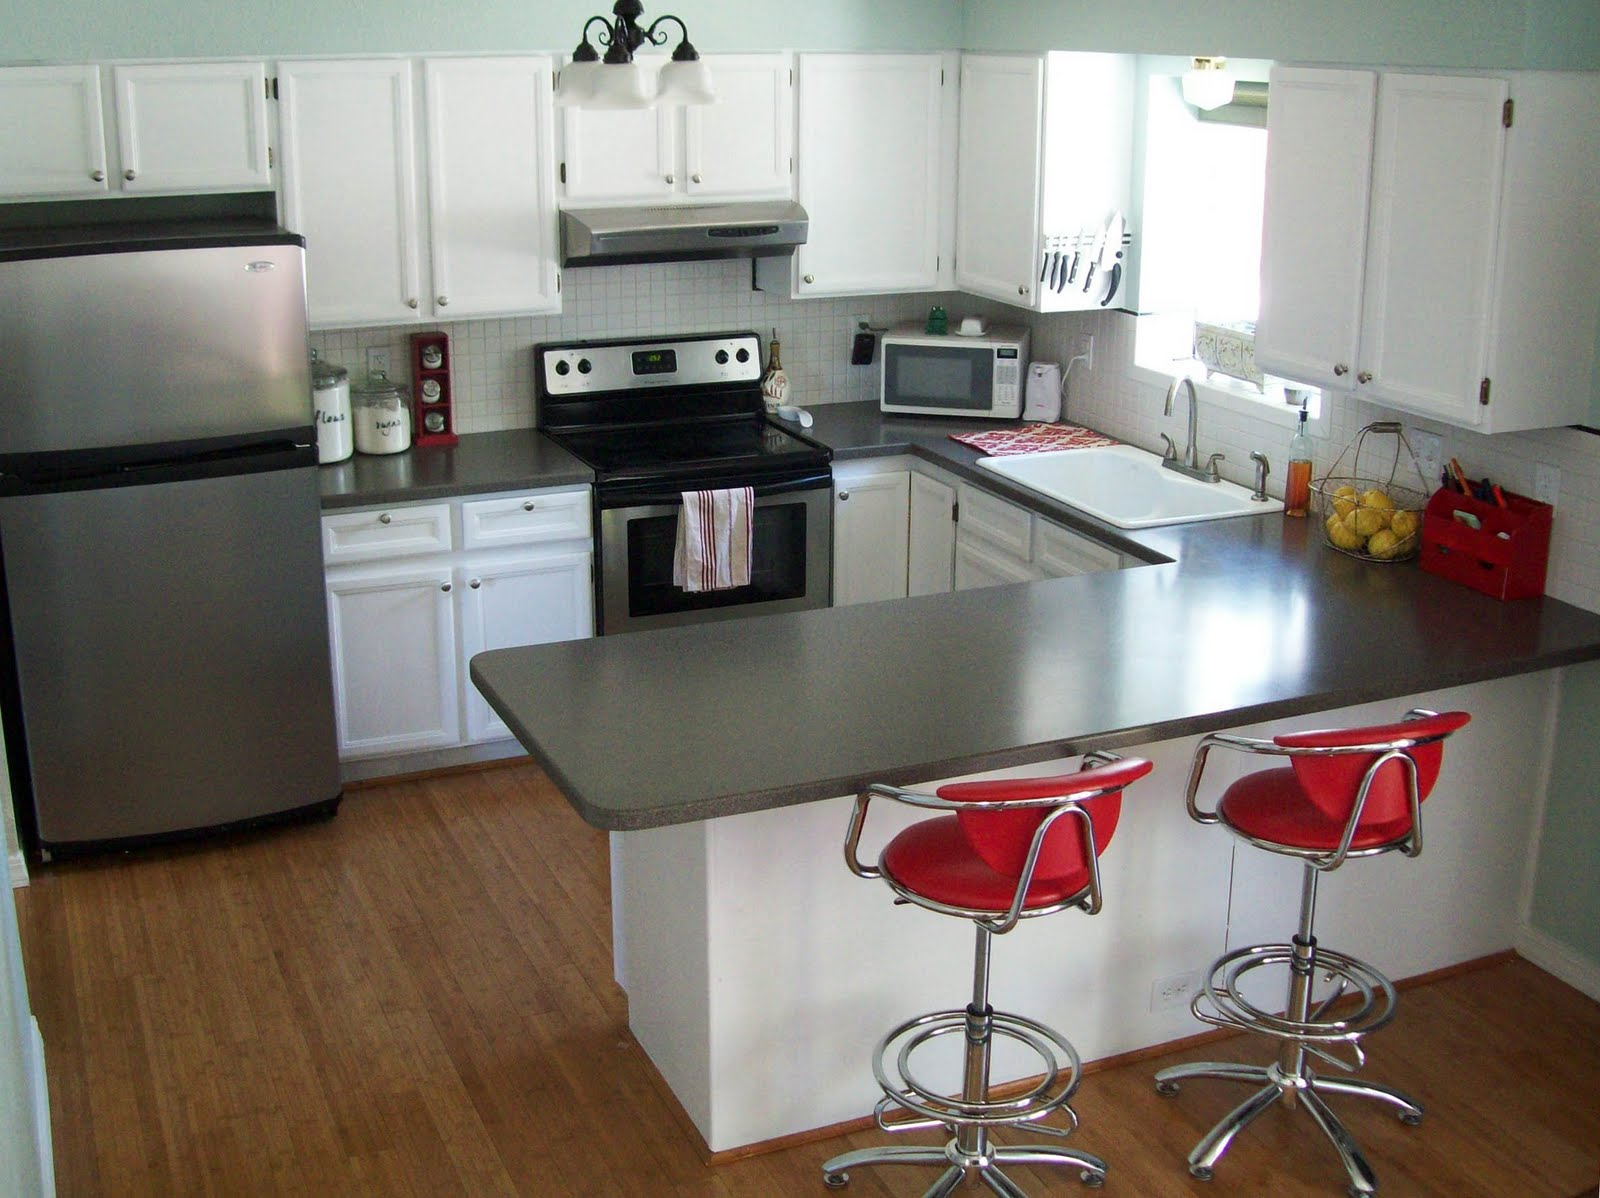 Kitchen cabinet with drawers photo - 1